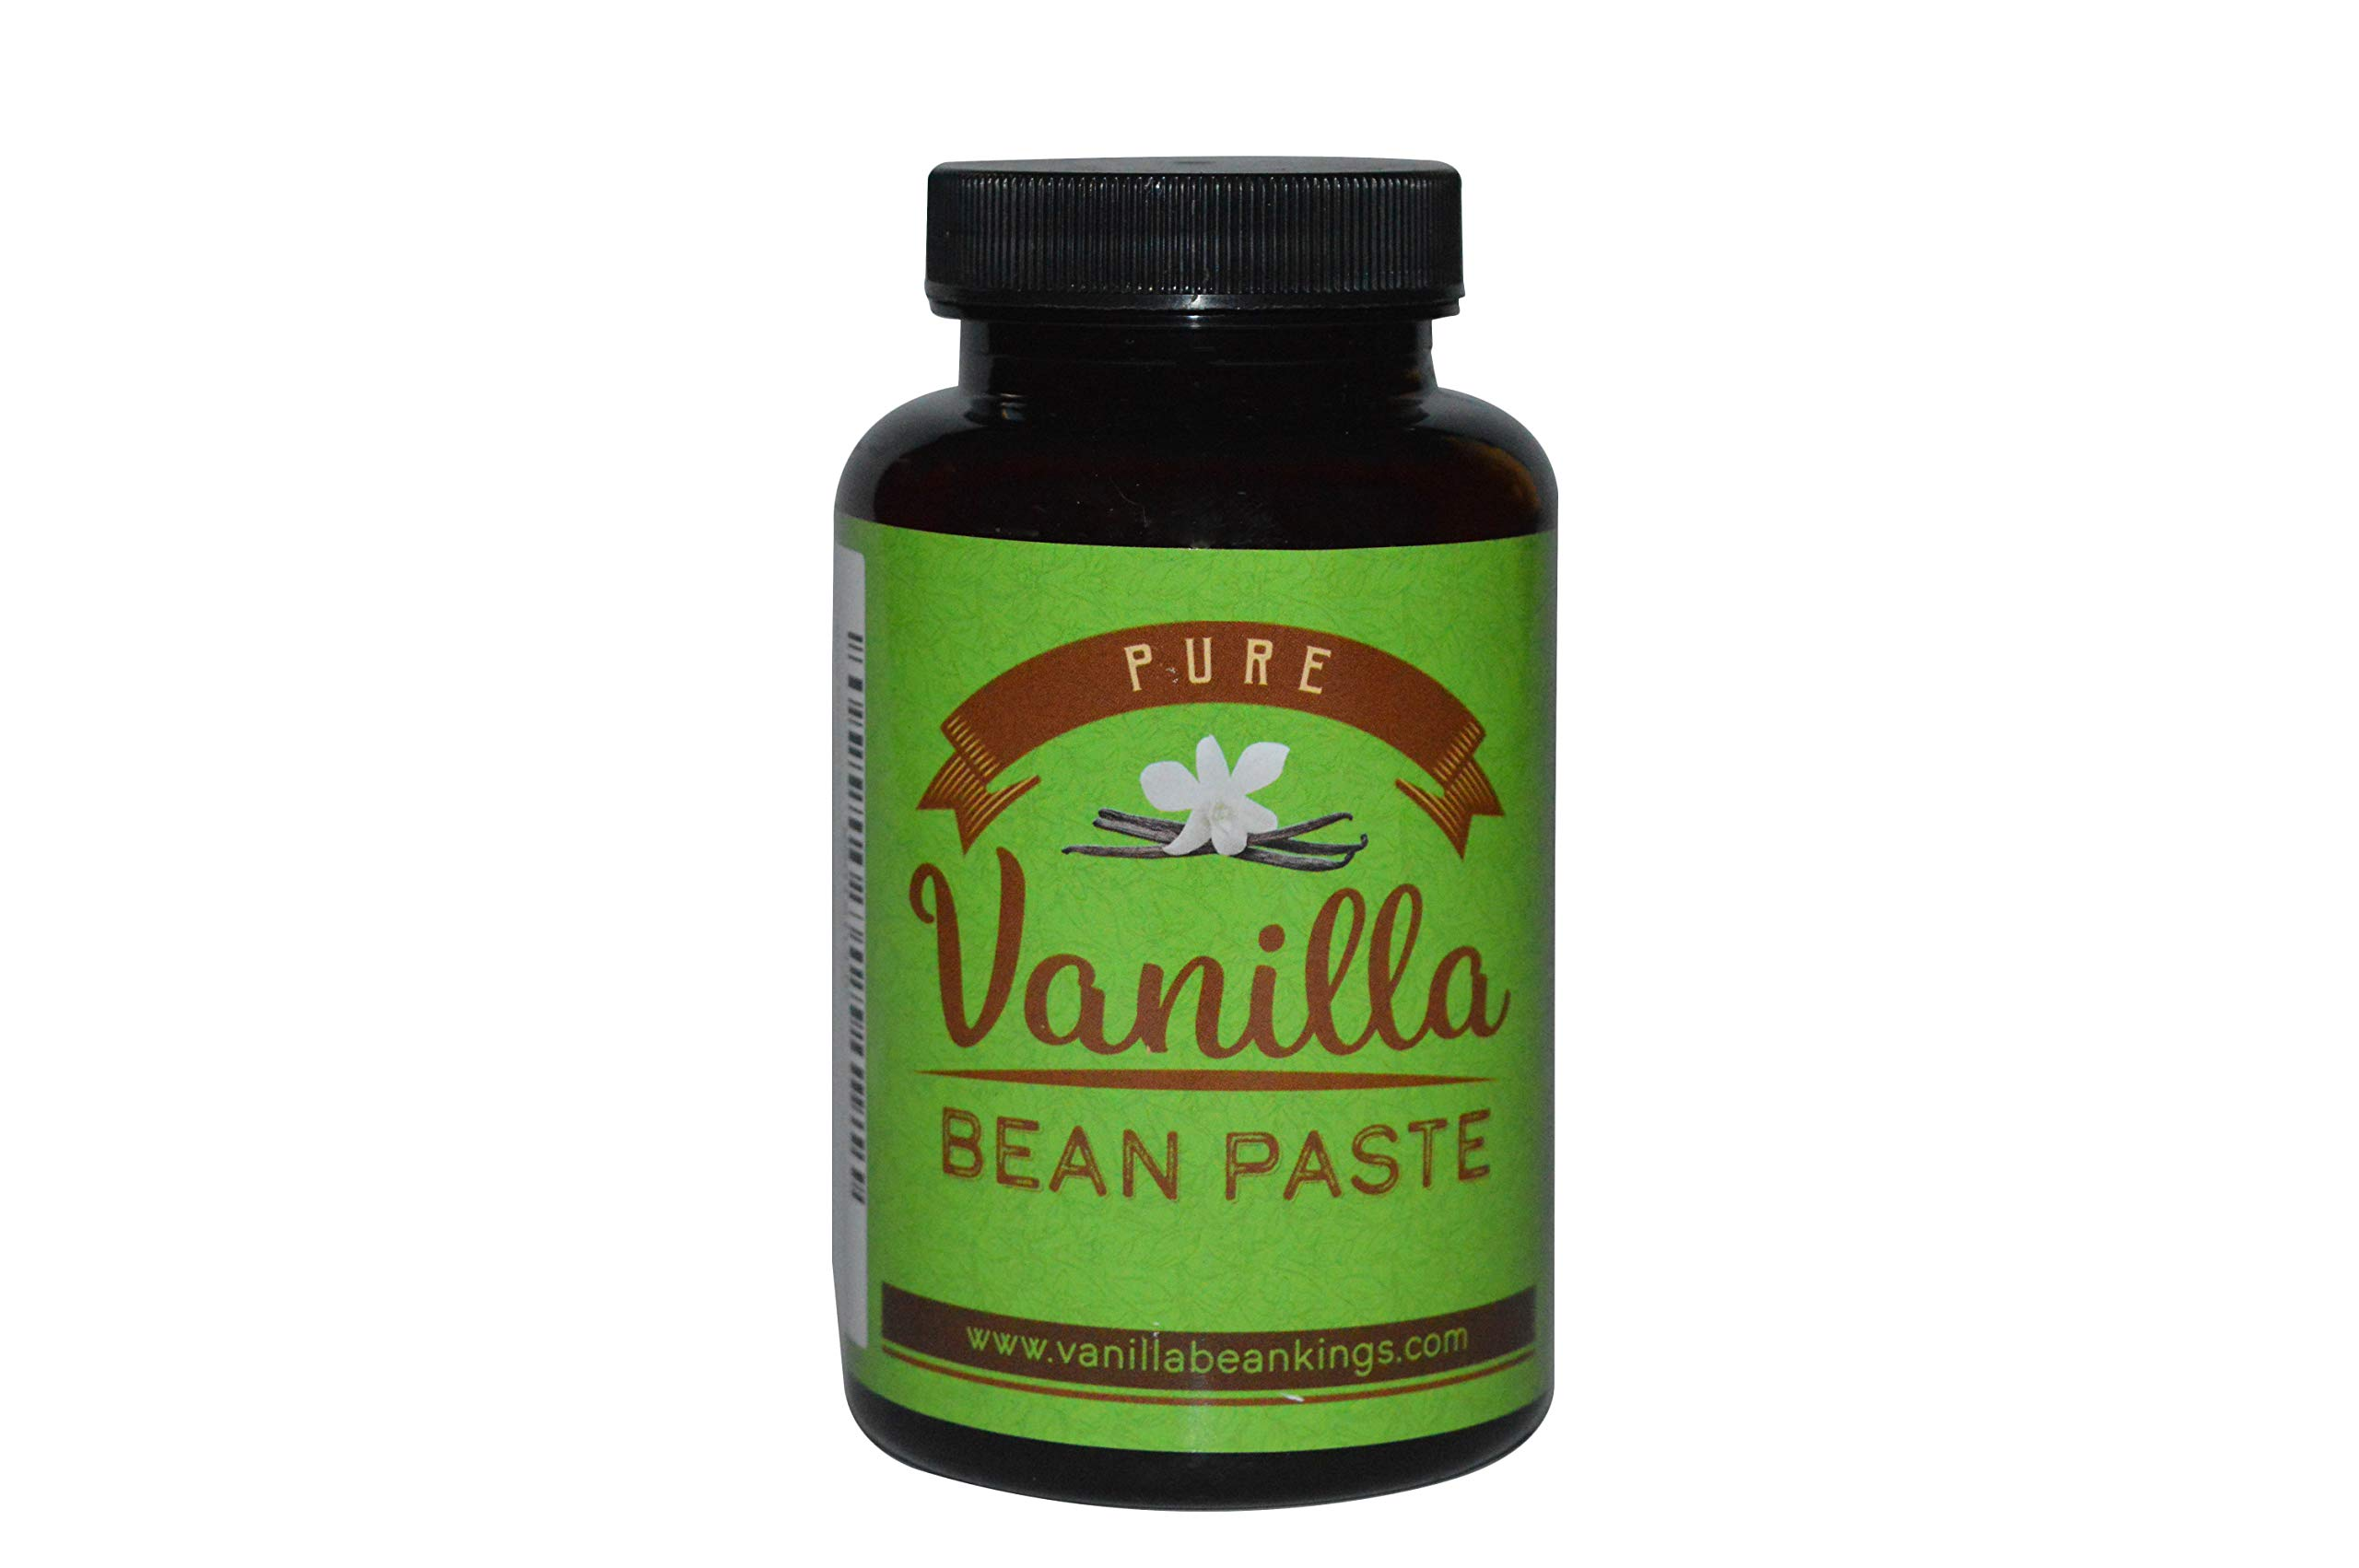 Pure Vanilla Bean Paste for Baking and Cooking - Gourmet Madagascar Bourbon Blend made with Real Vanilla Seeds - 8 Ounces by Vanilla Bean Kings